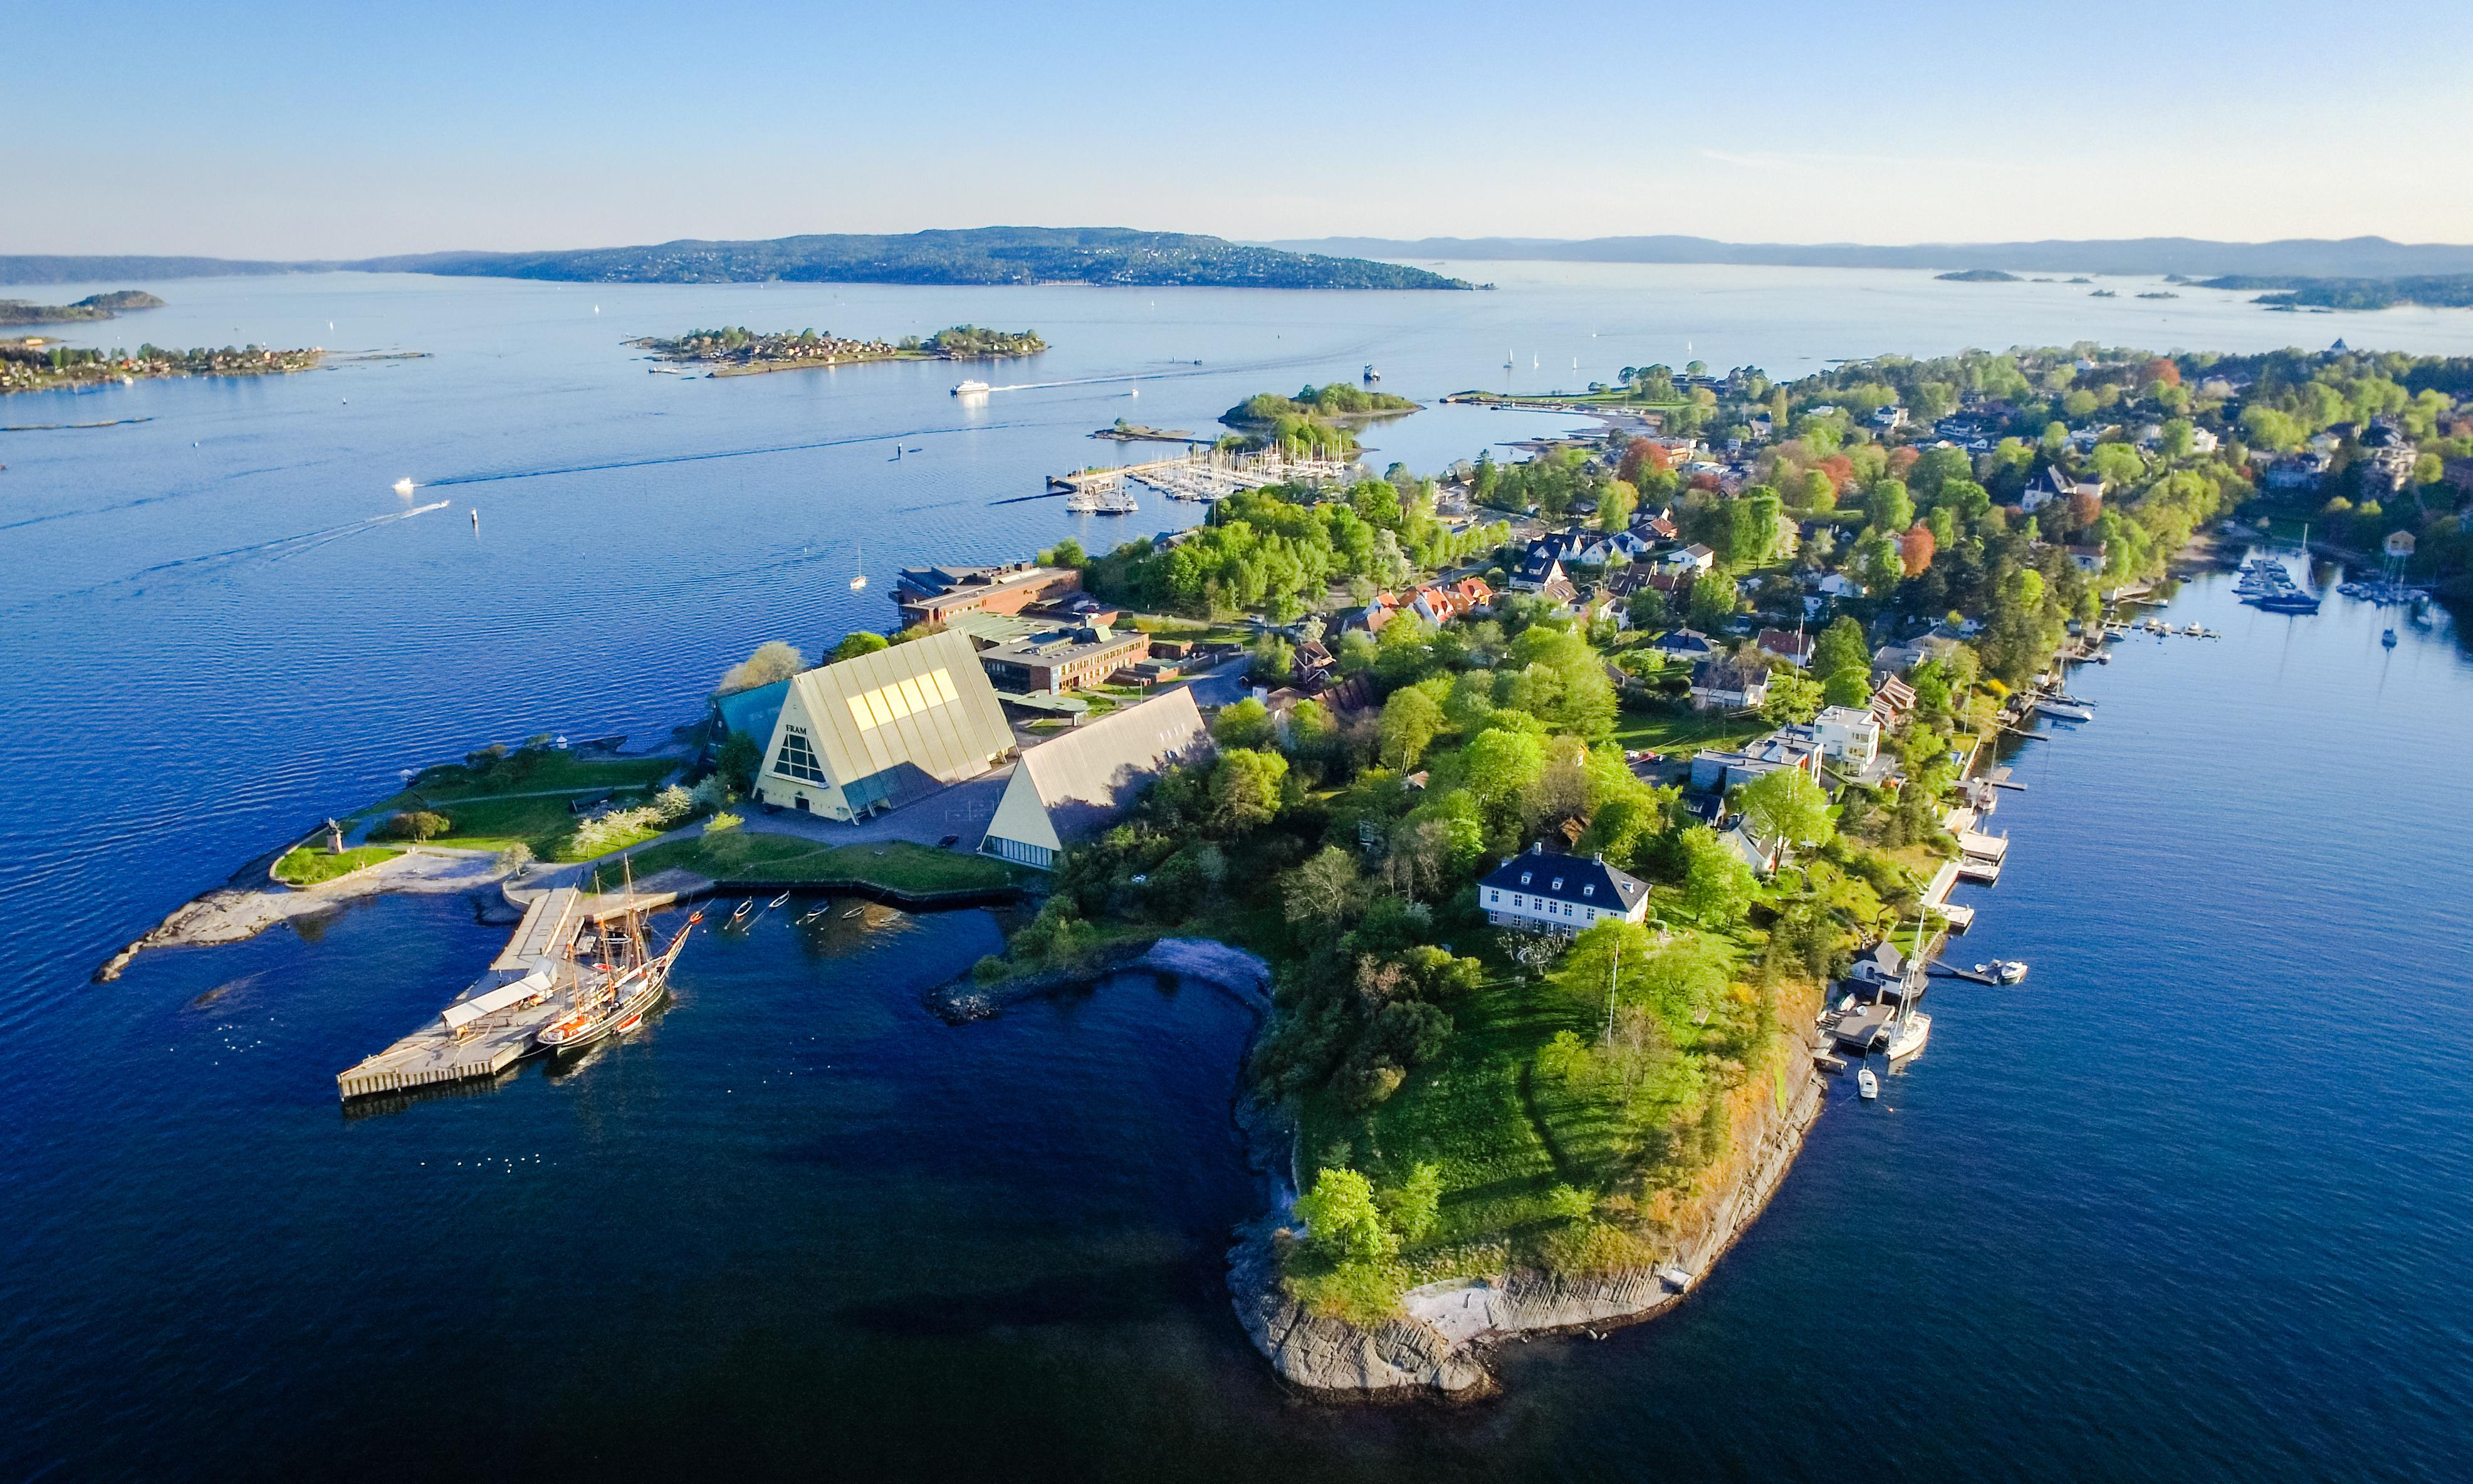 How to do Norway on a shoestring? Take a 12-hour trip to Oslo